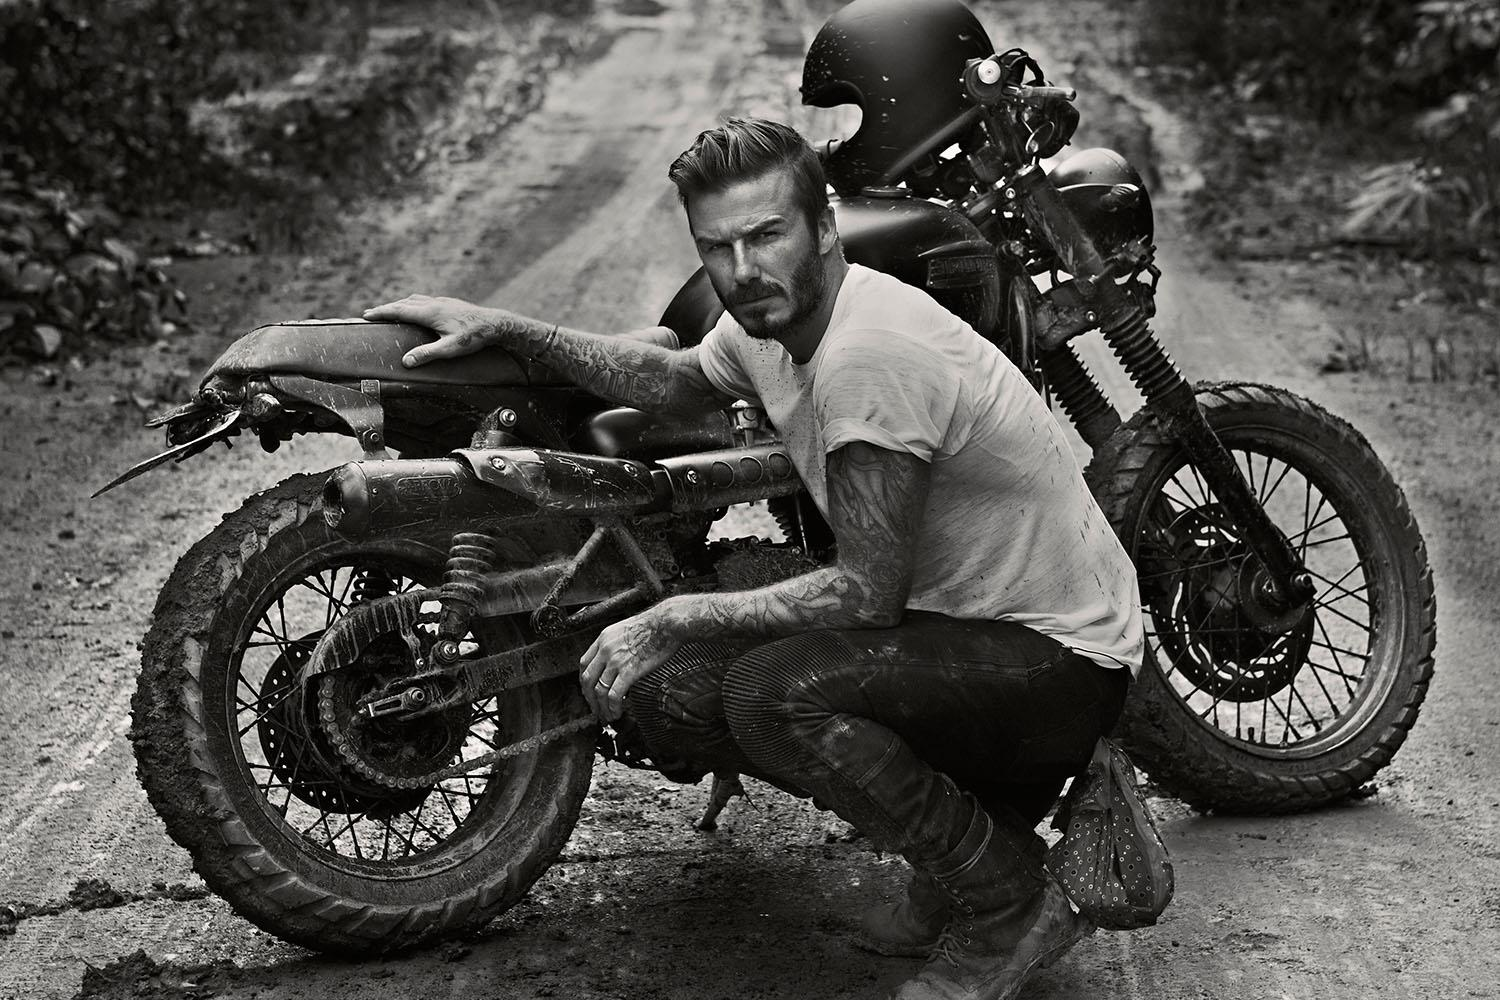 David Beckham with Triumph Scrambler in Brazil